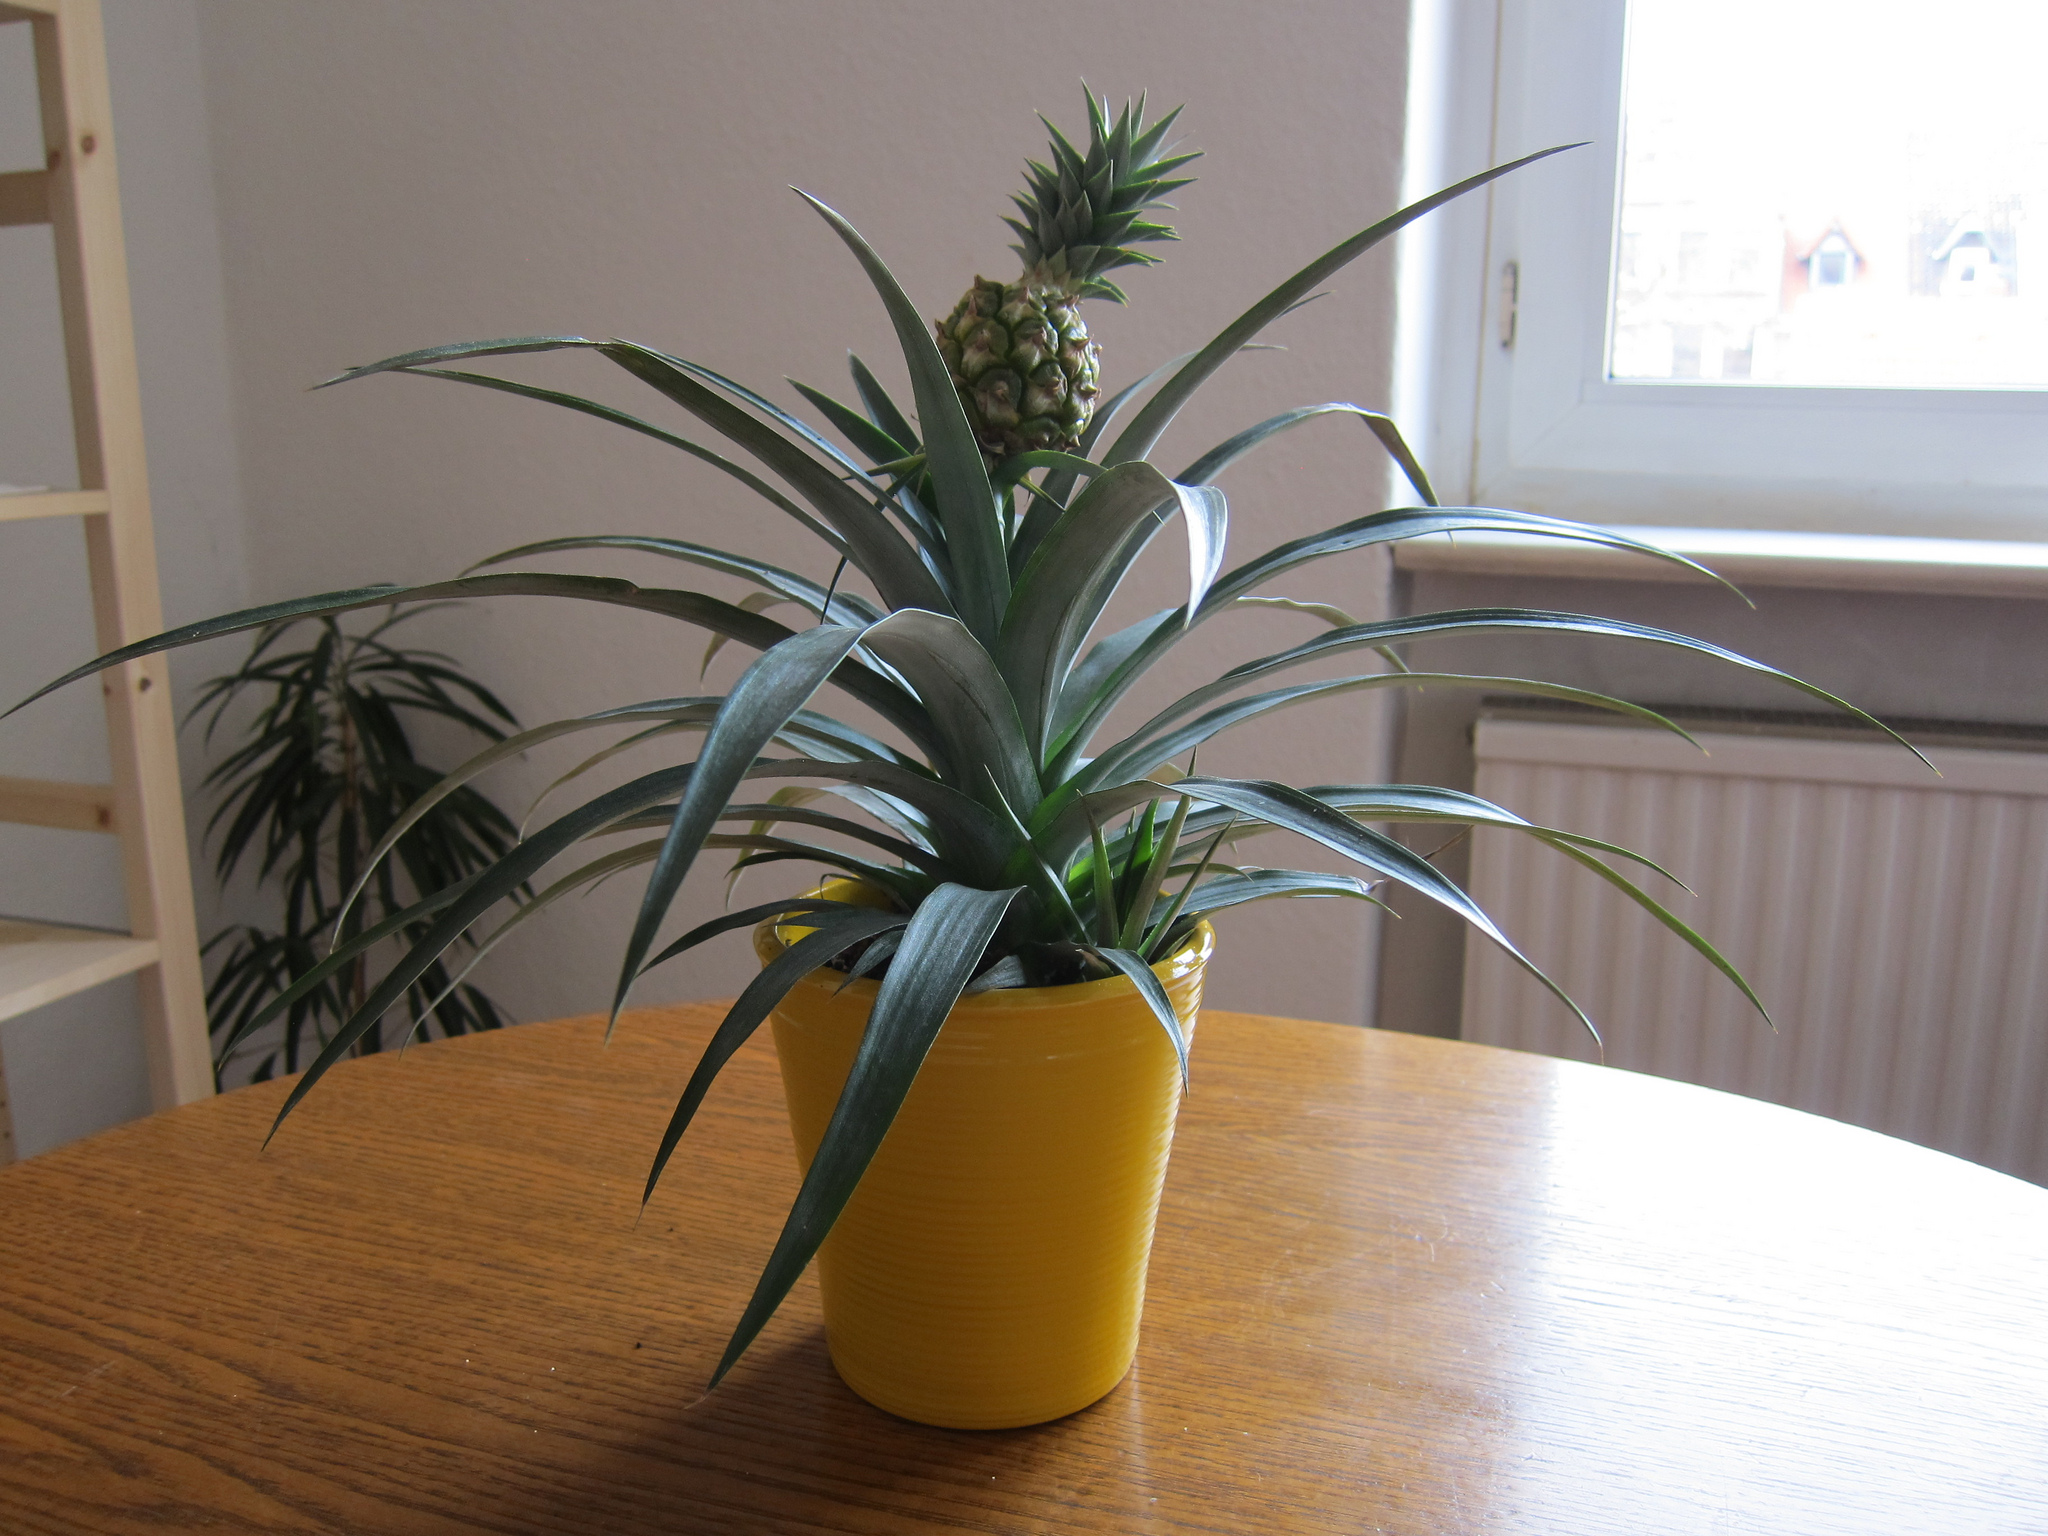 Pineapple plant growing indooors; photo courtesy of Flickr cc/Tobin